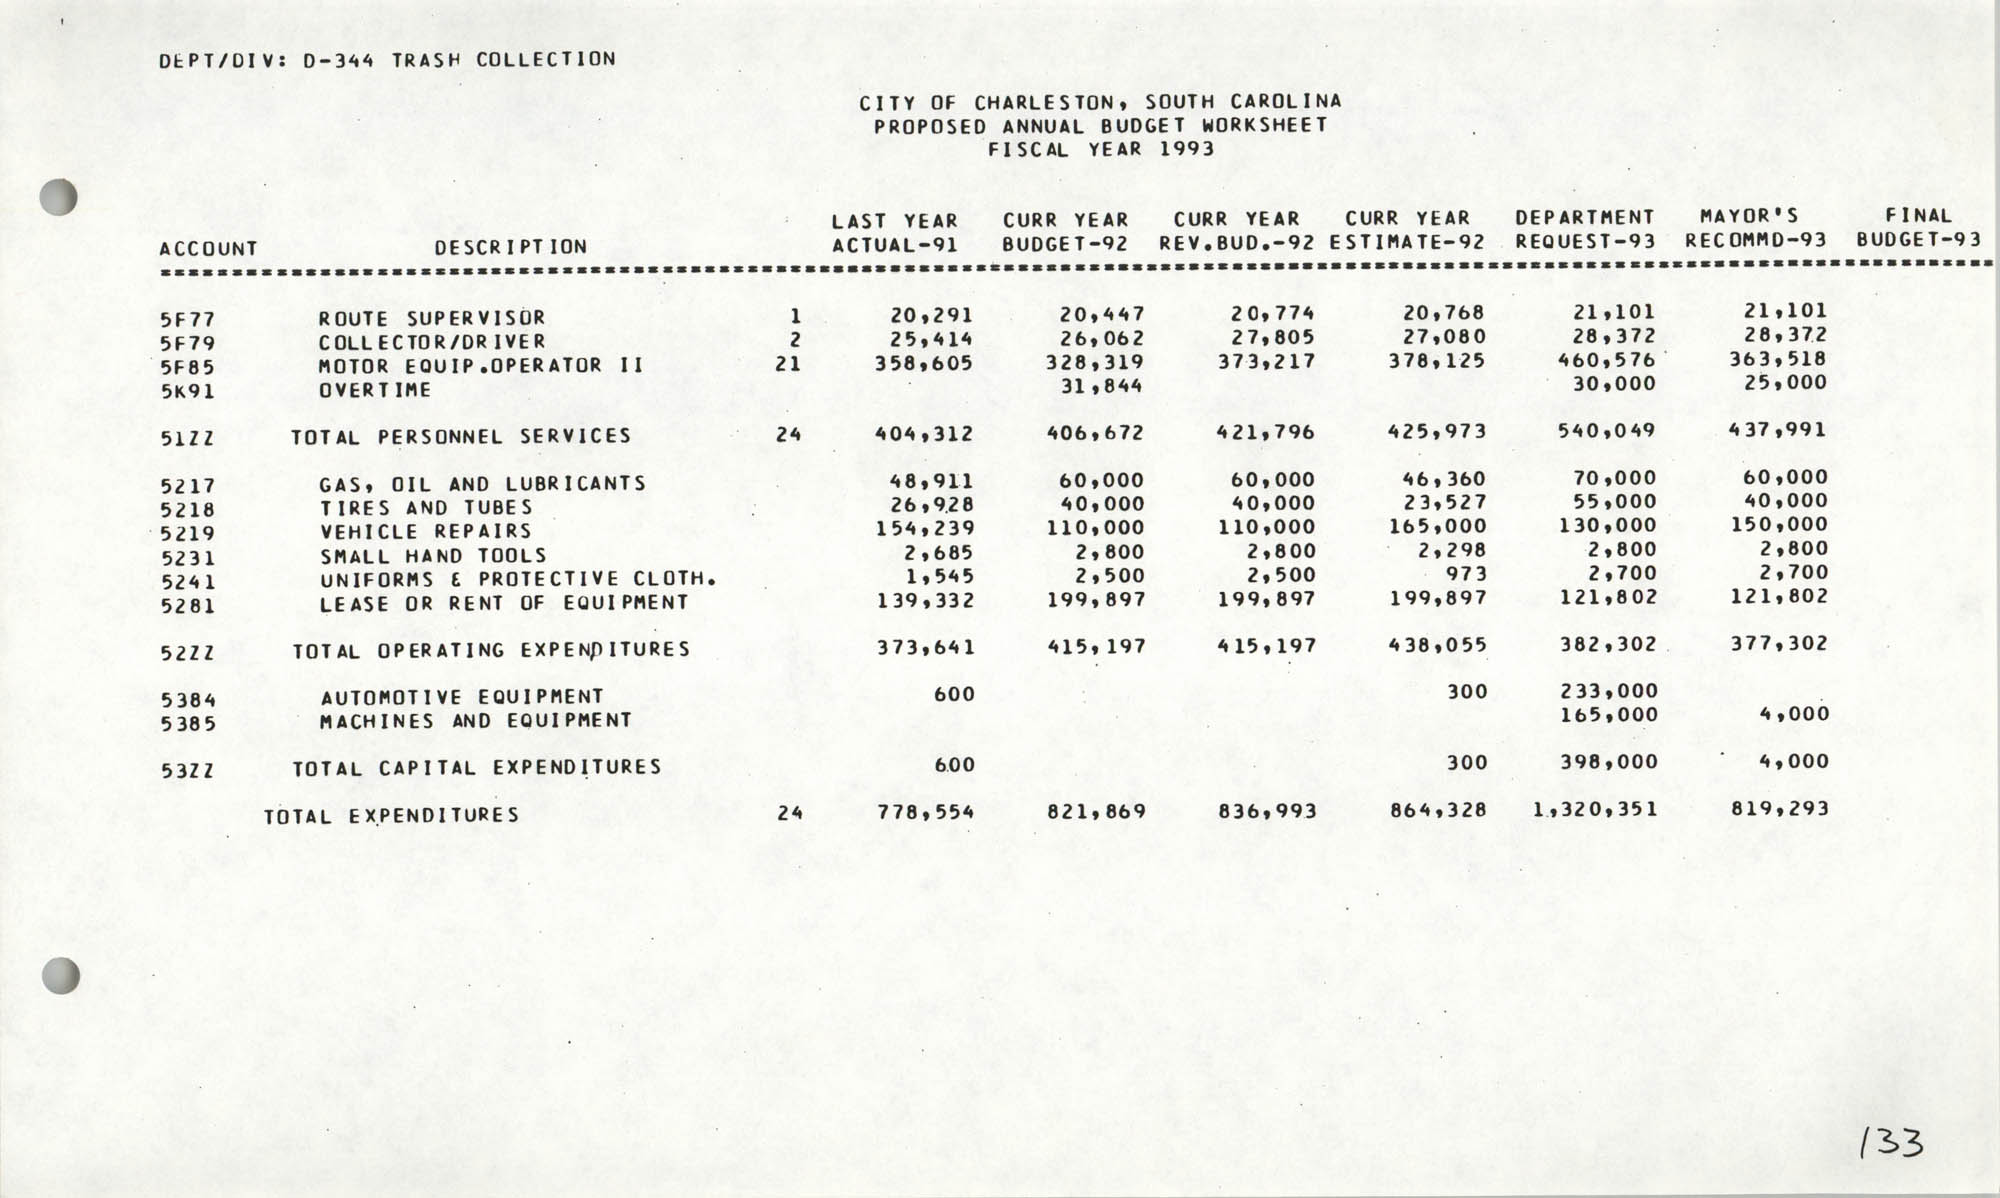 The City Council of Charleston, South Carolina, 1993 Budget, Page 133